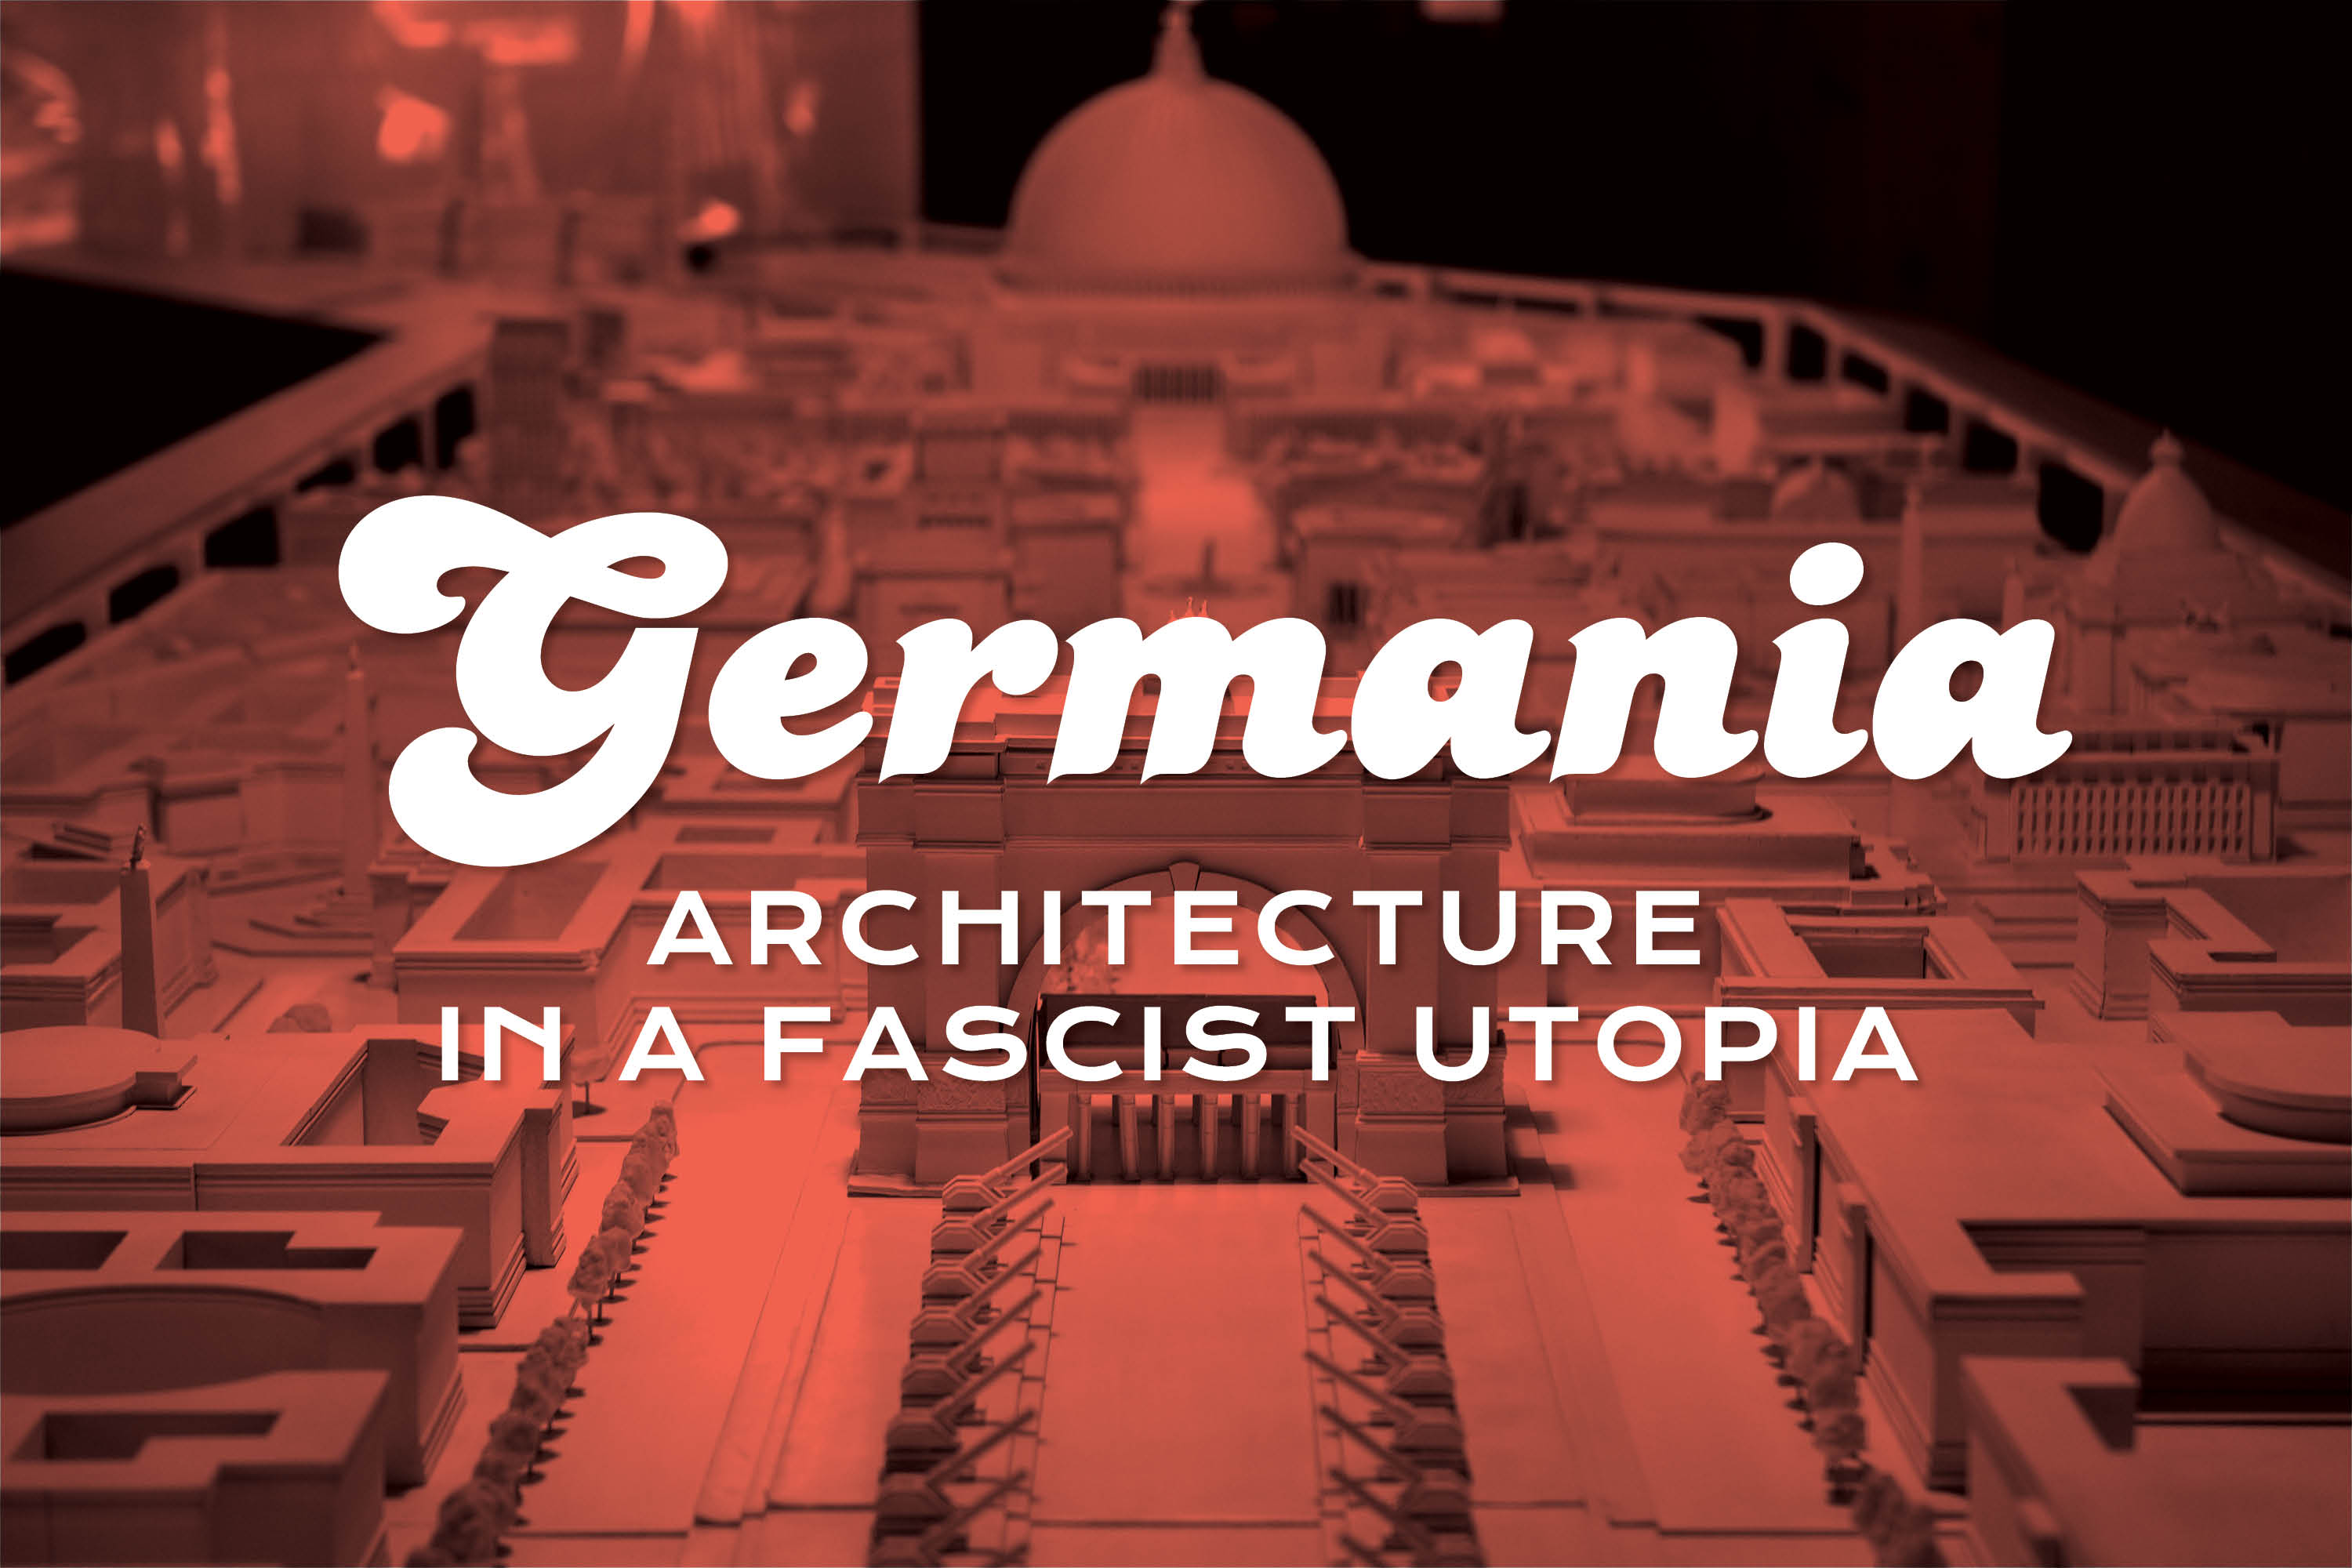 Traces of this fascist utopia still exist in modern Berlin